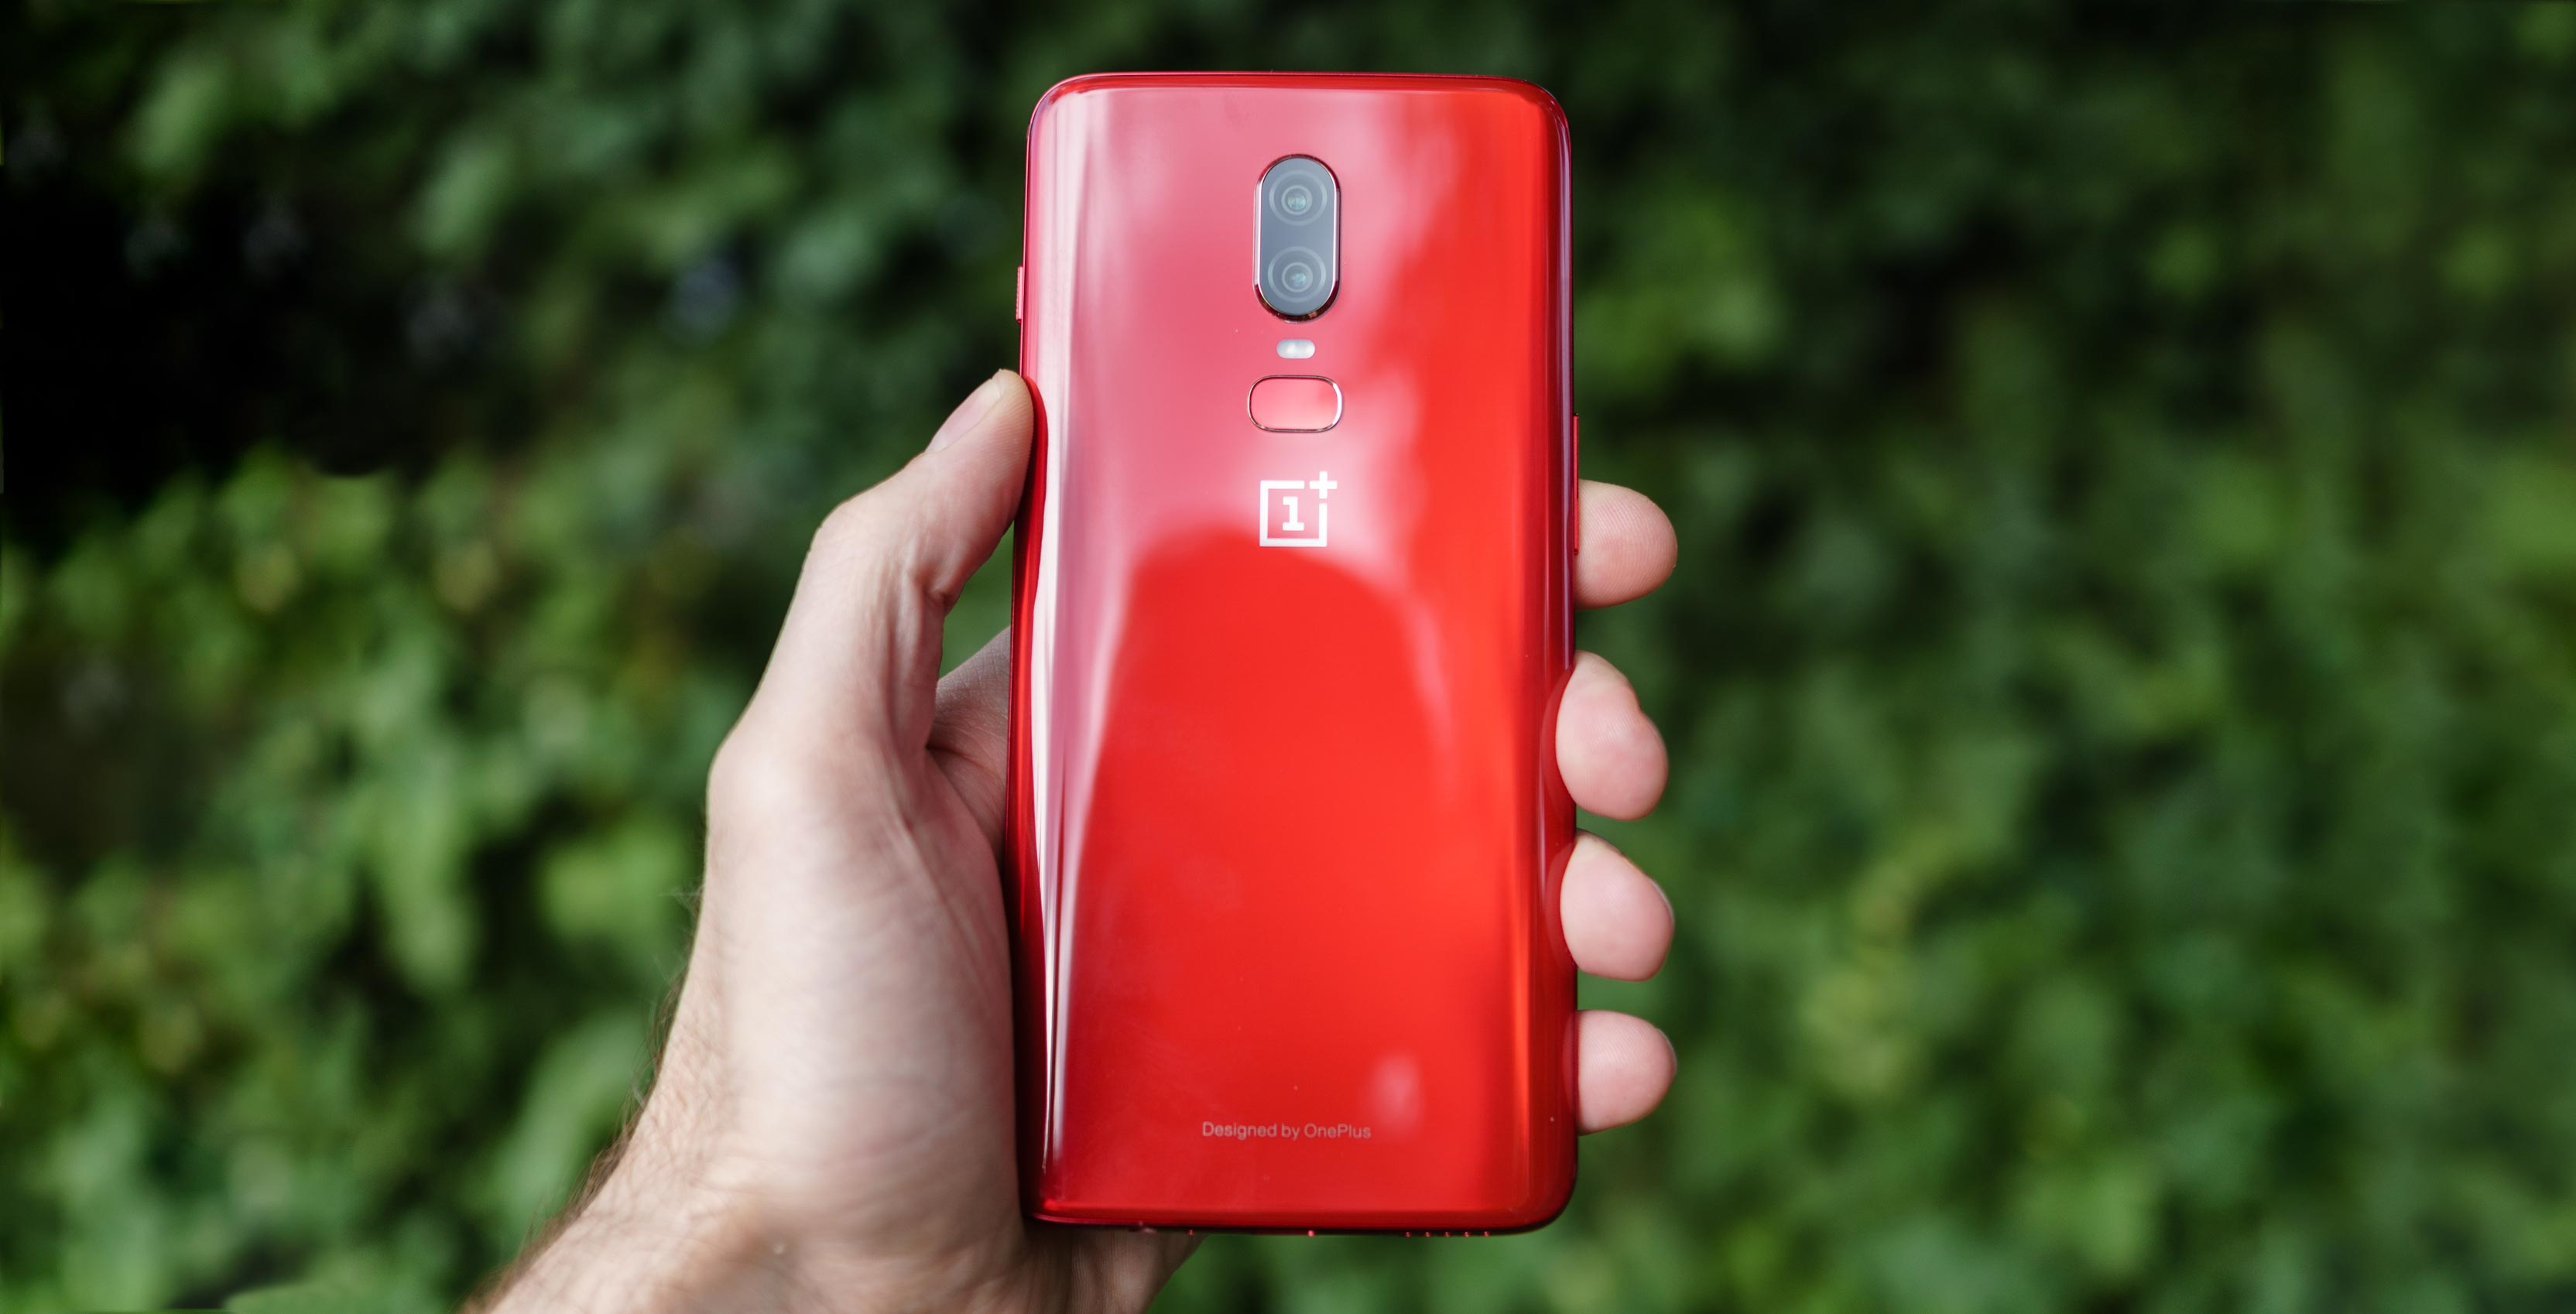 OnePlus pushes its 6T launch event up to avoid Apple overlap